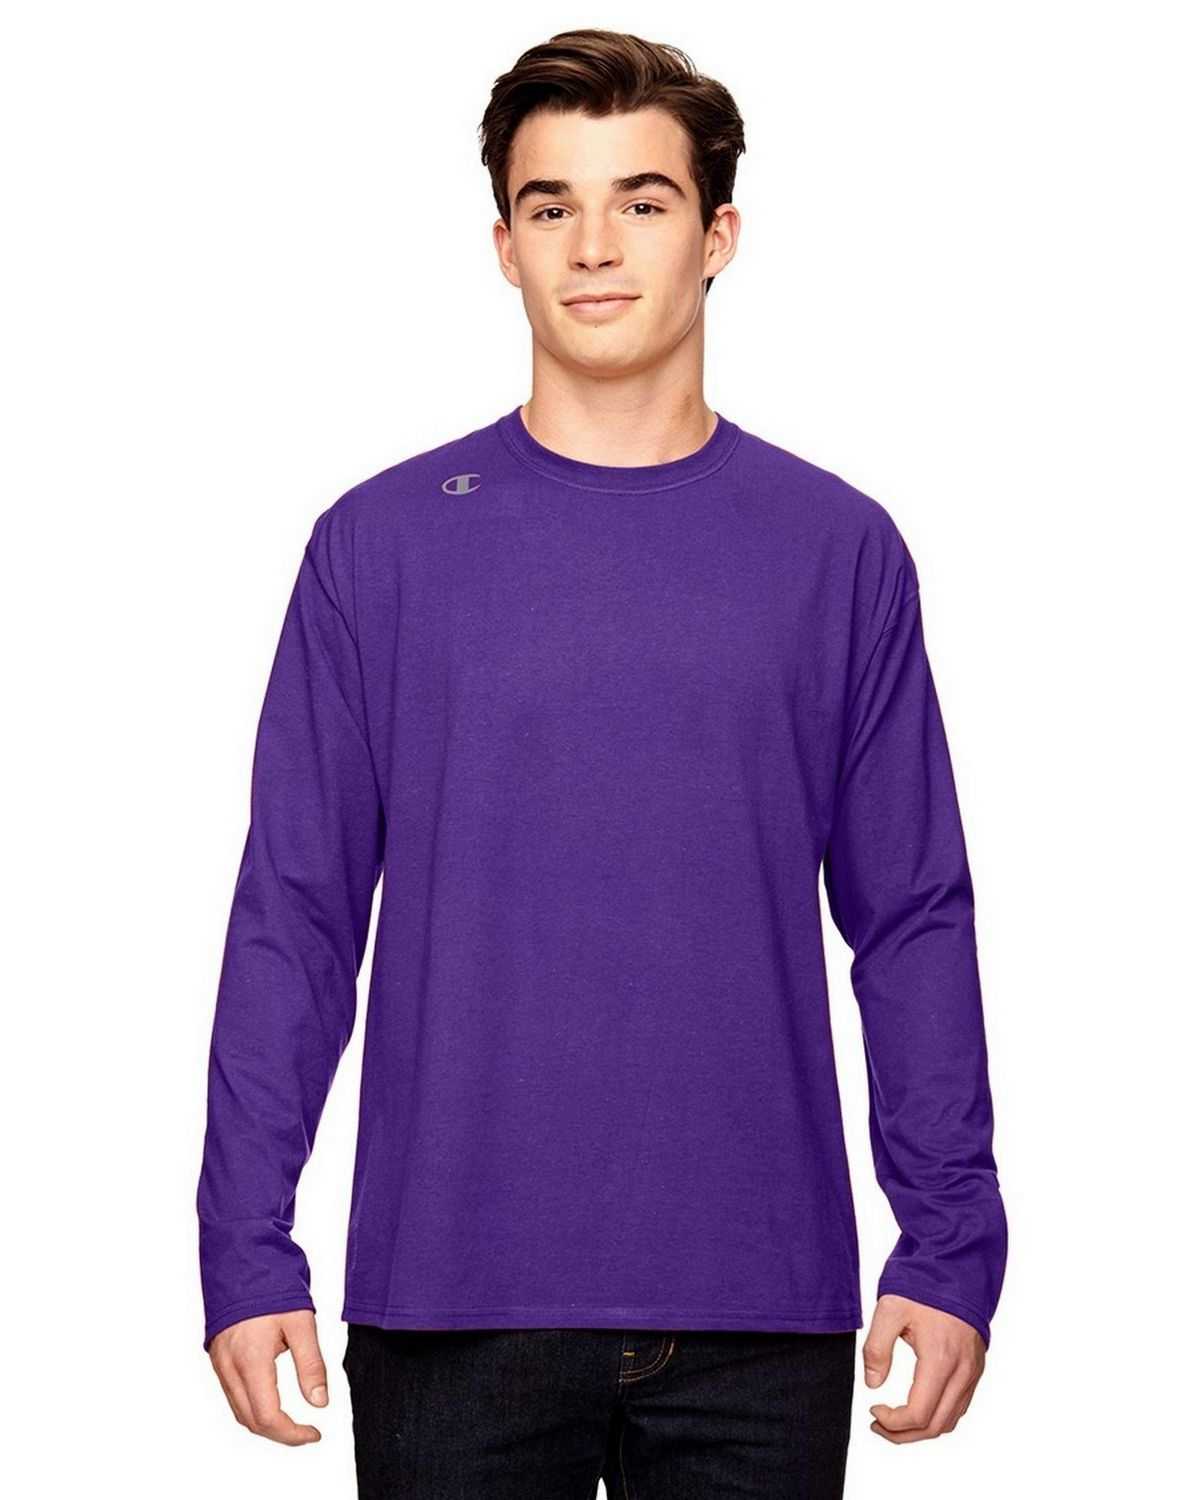 Champion T390 Vapor T-Shirt - Sport Purple - XL T390